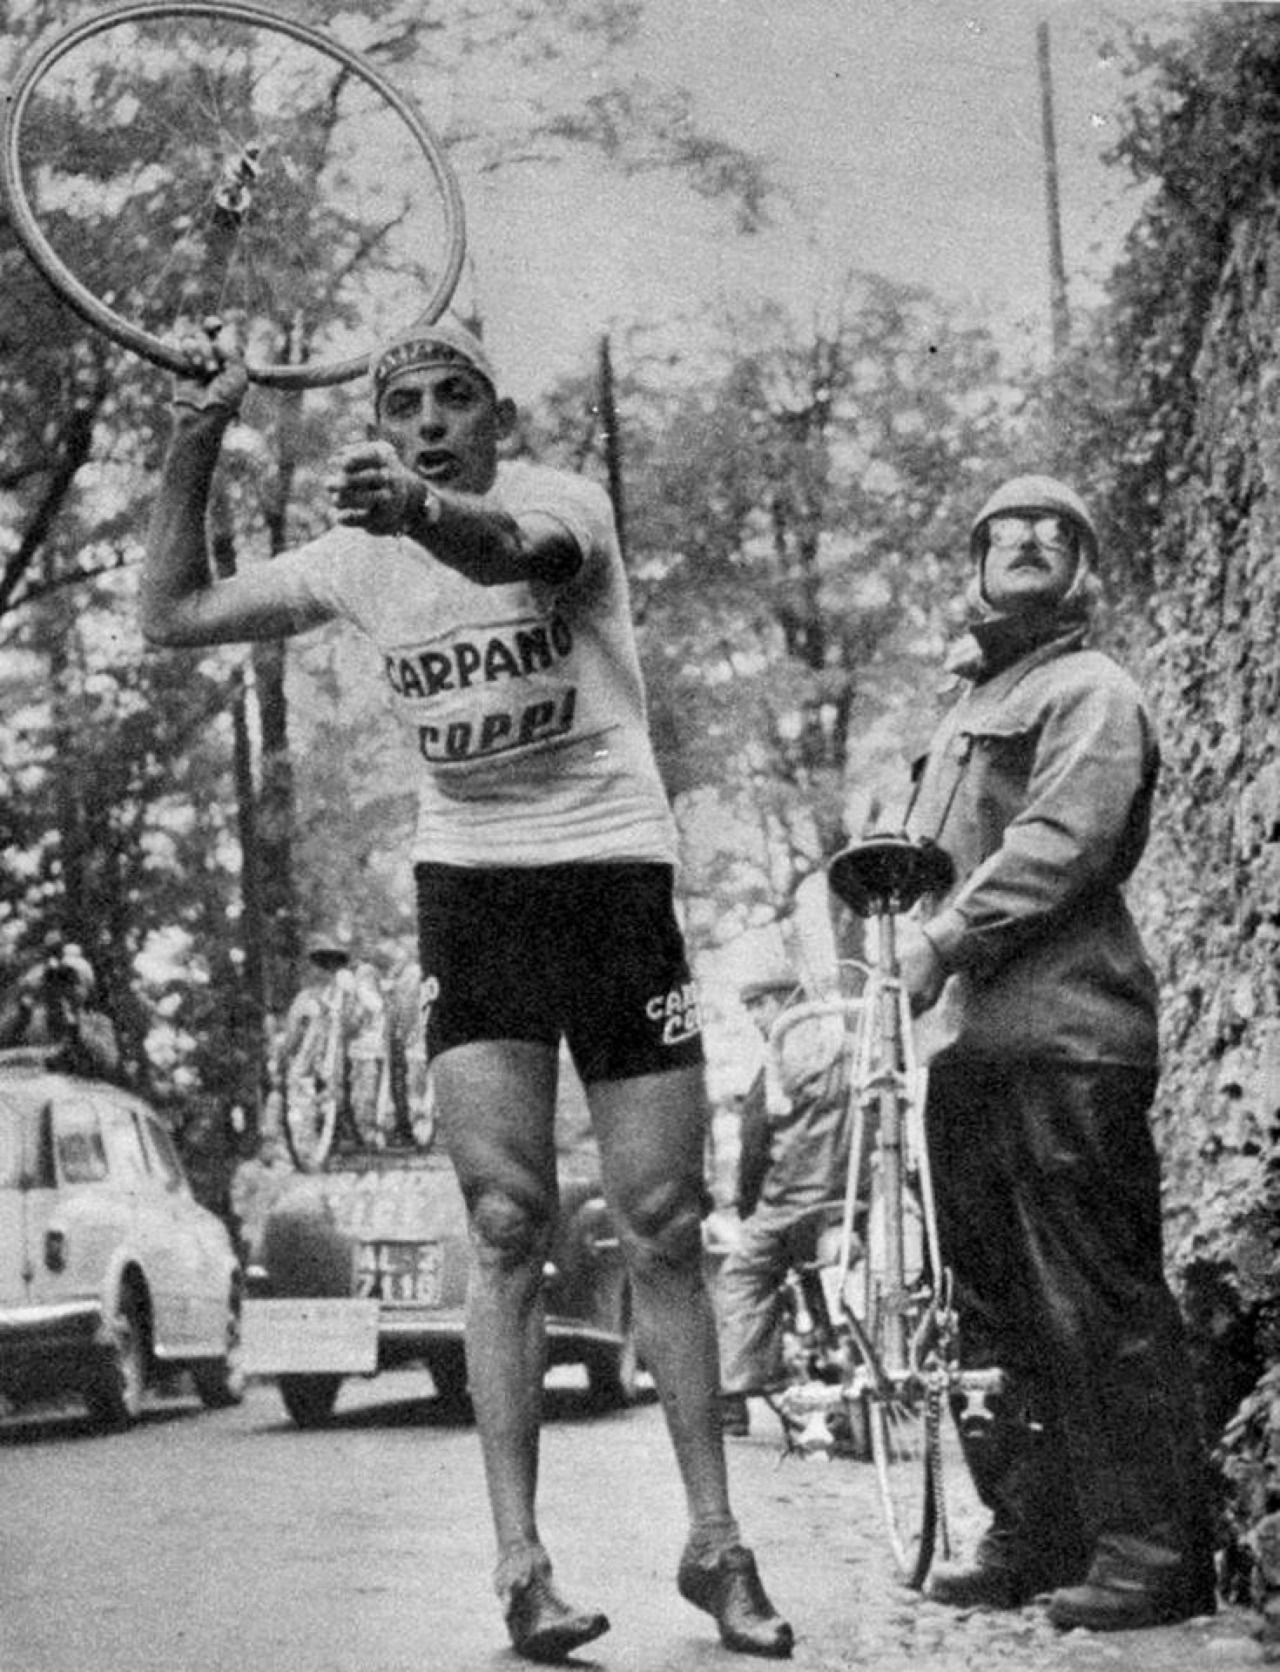 Coppi said YOU, YOU GIVE ME THAT WHEEL RIGHT NOW!!!! The bro next to him is trying not to look at Coppi's huge thighs and tiny ankles, or notice that he's teetering like a crane.